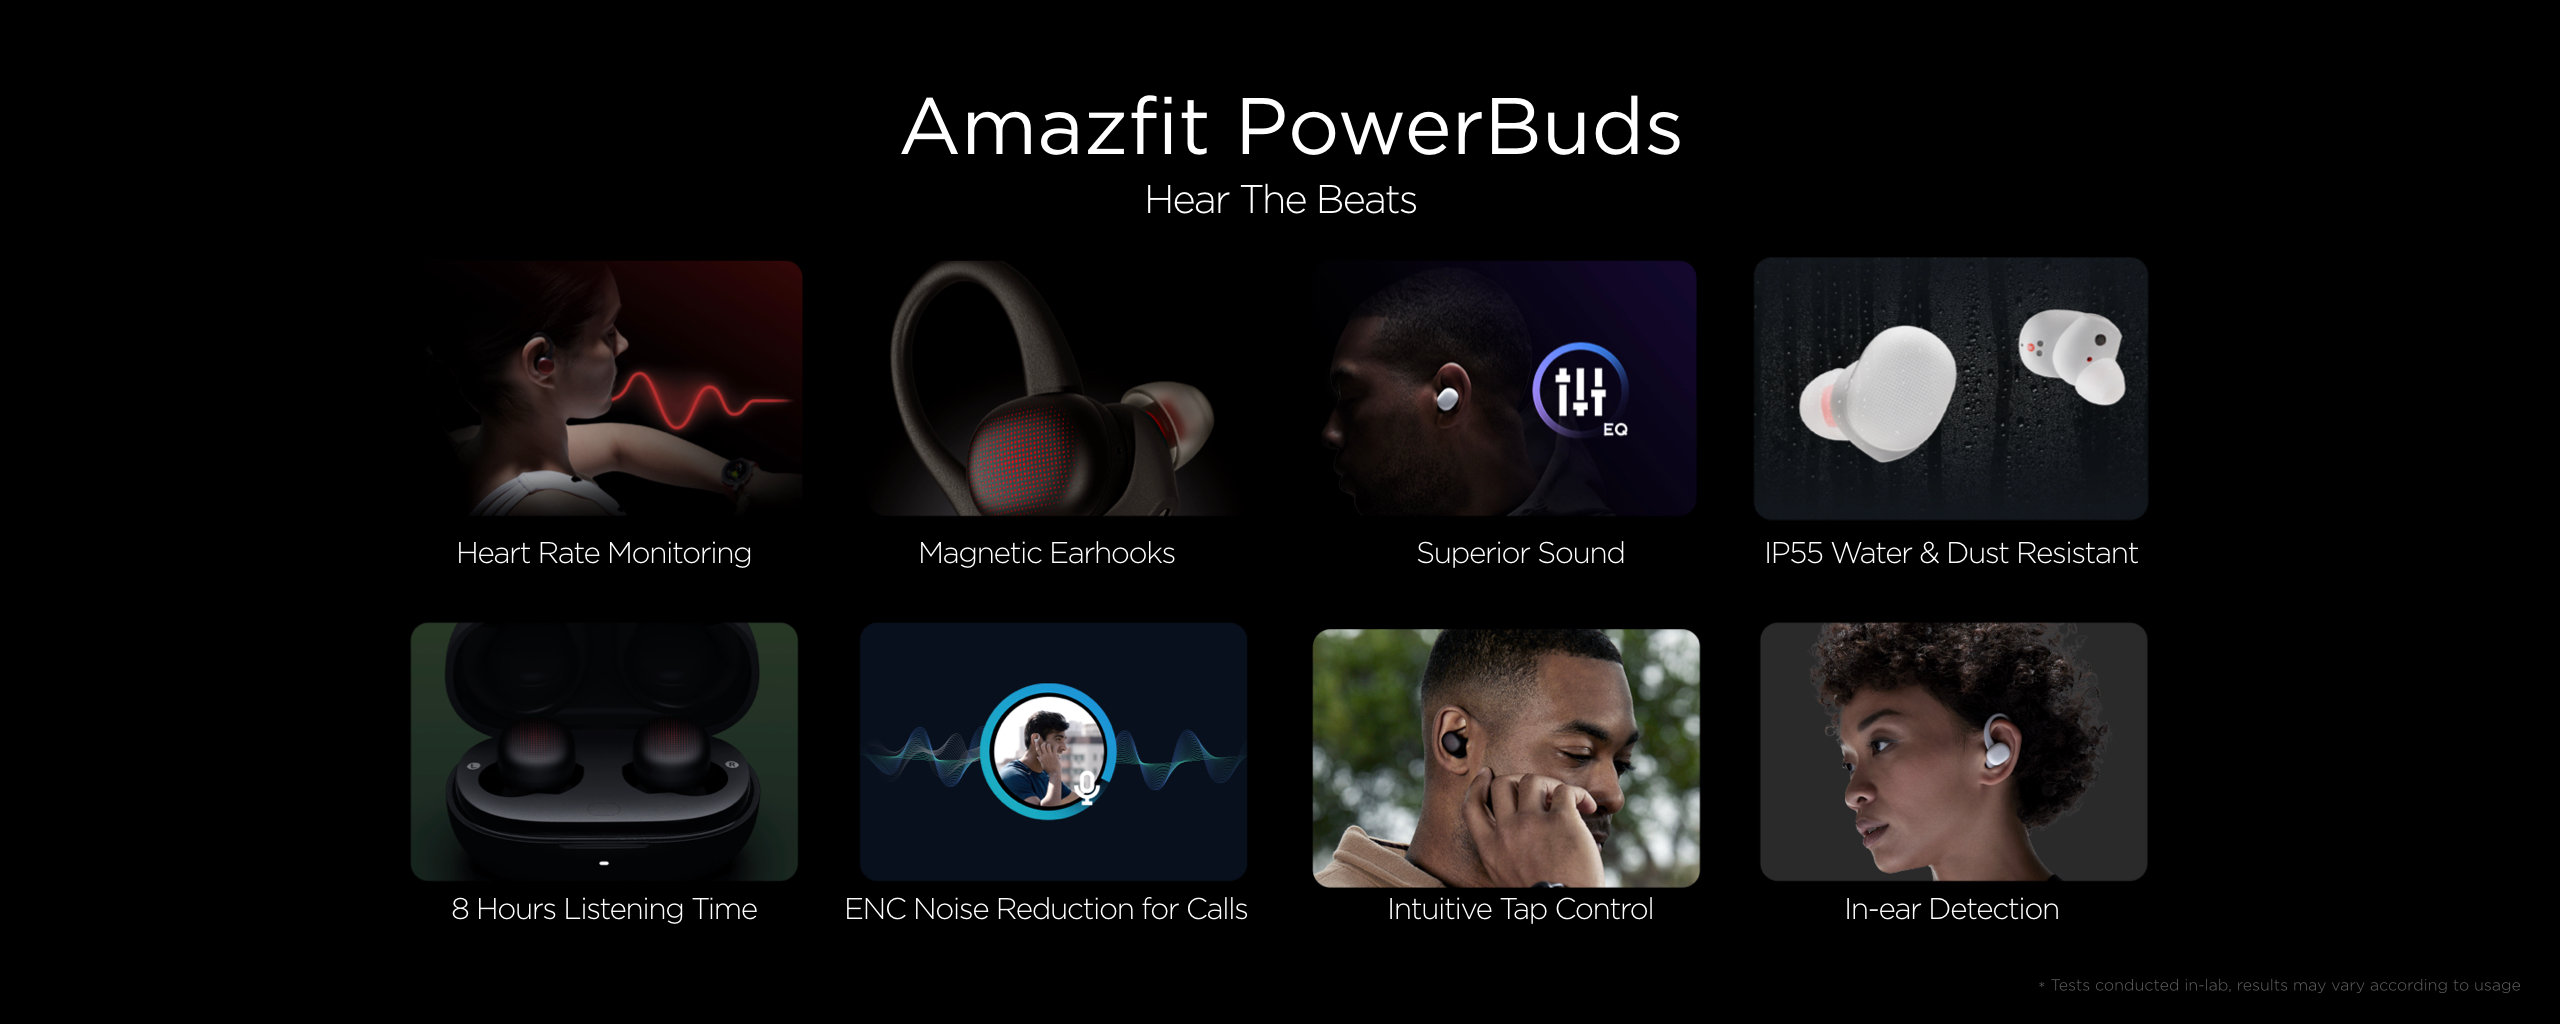 New Amazfit PowerBuds, features, specifications and price. Xiaomi Addicts News